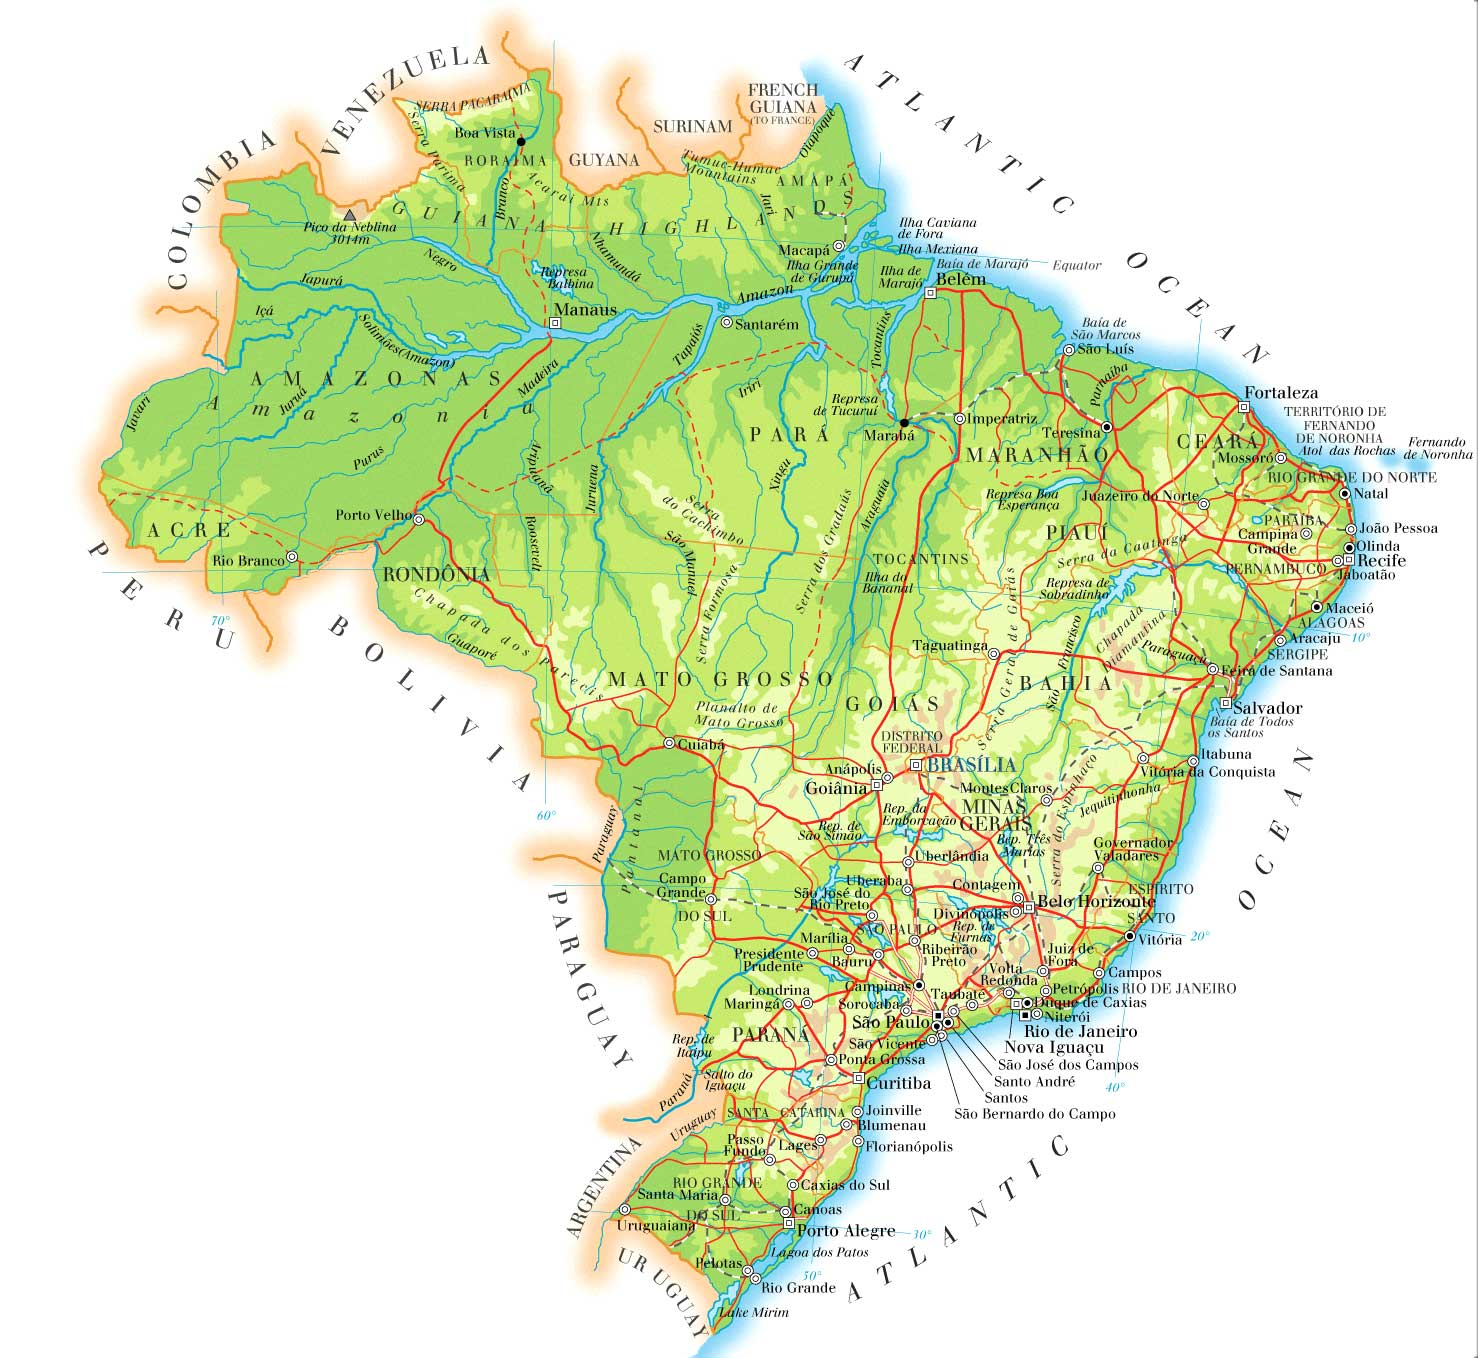 Brazil Map Brazil mappery